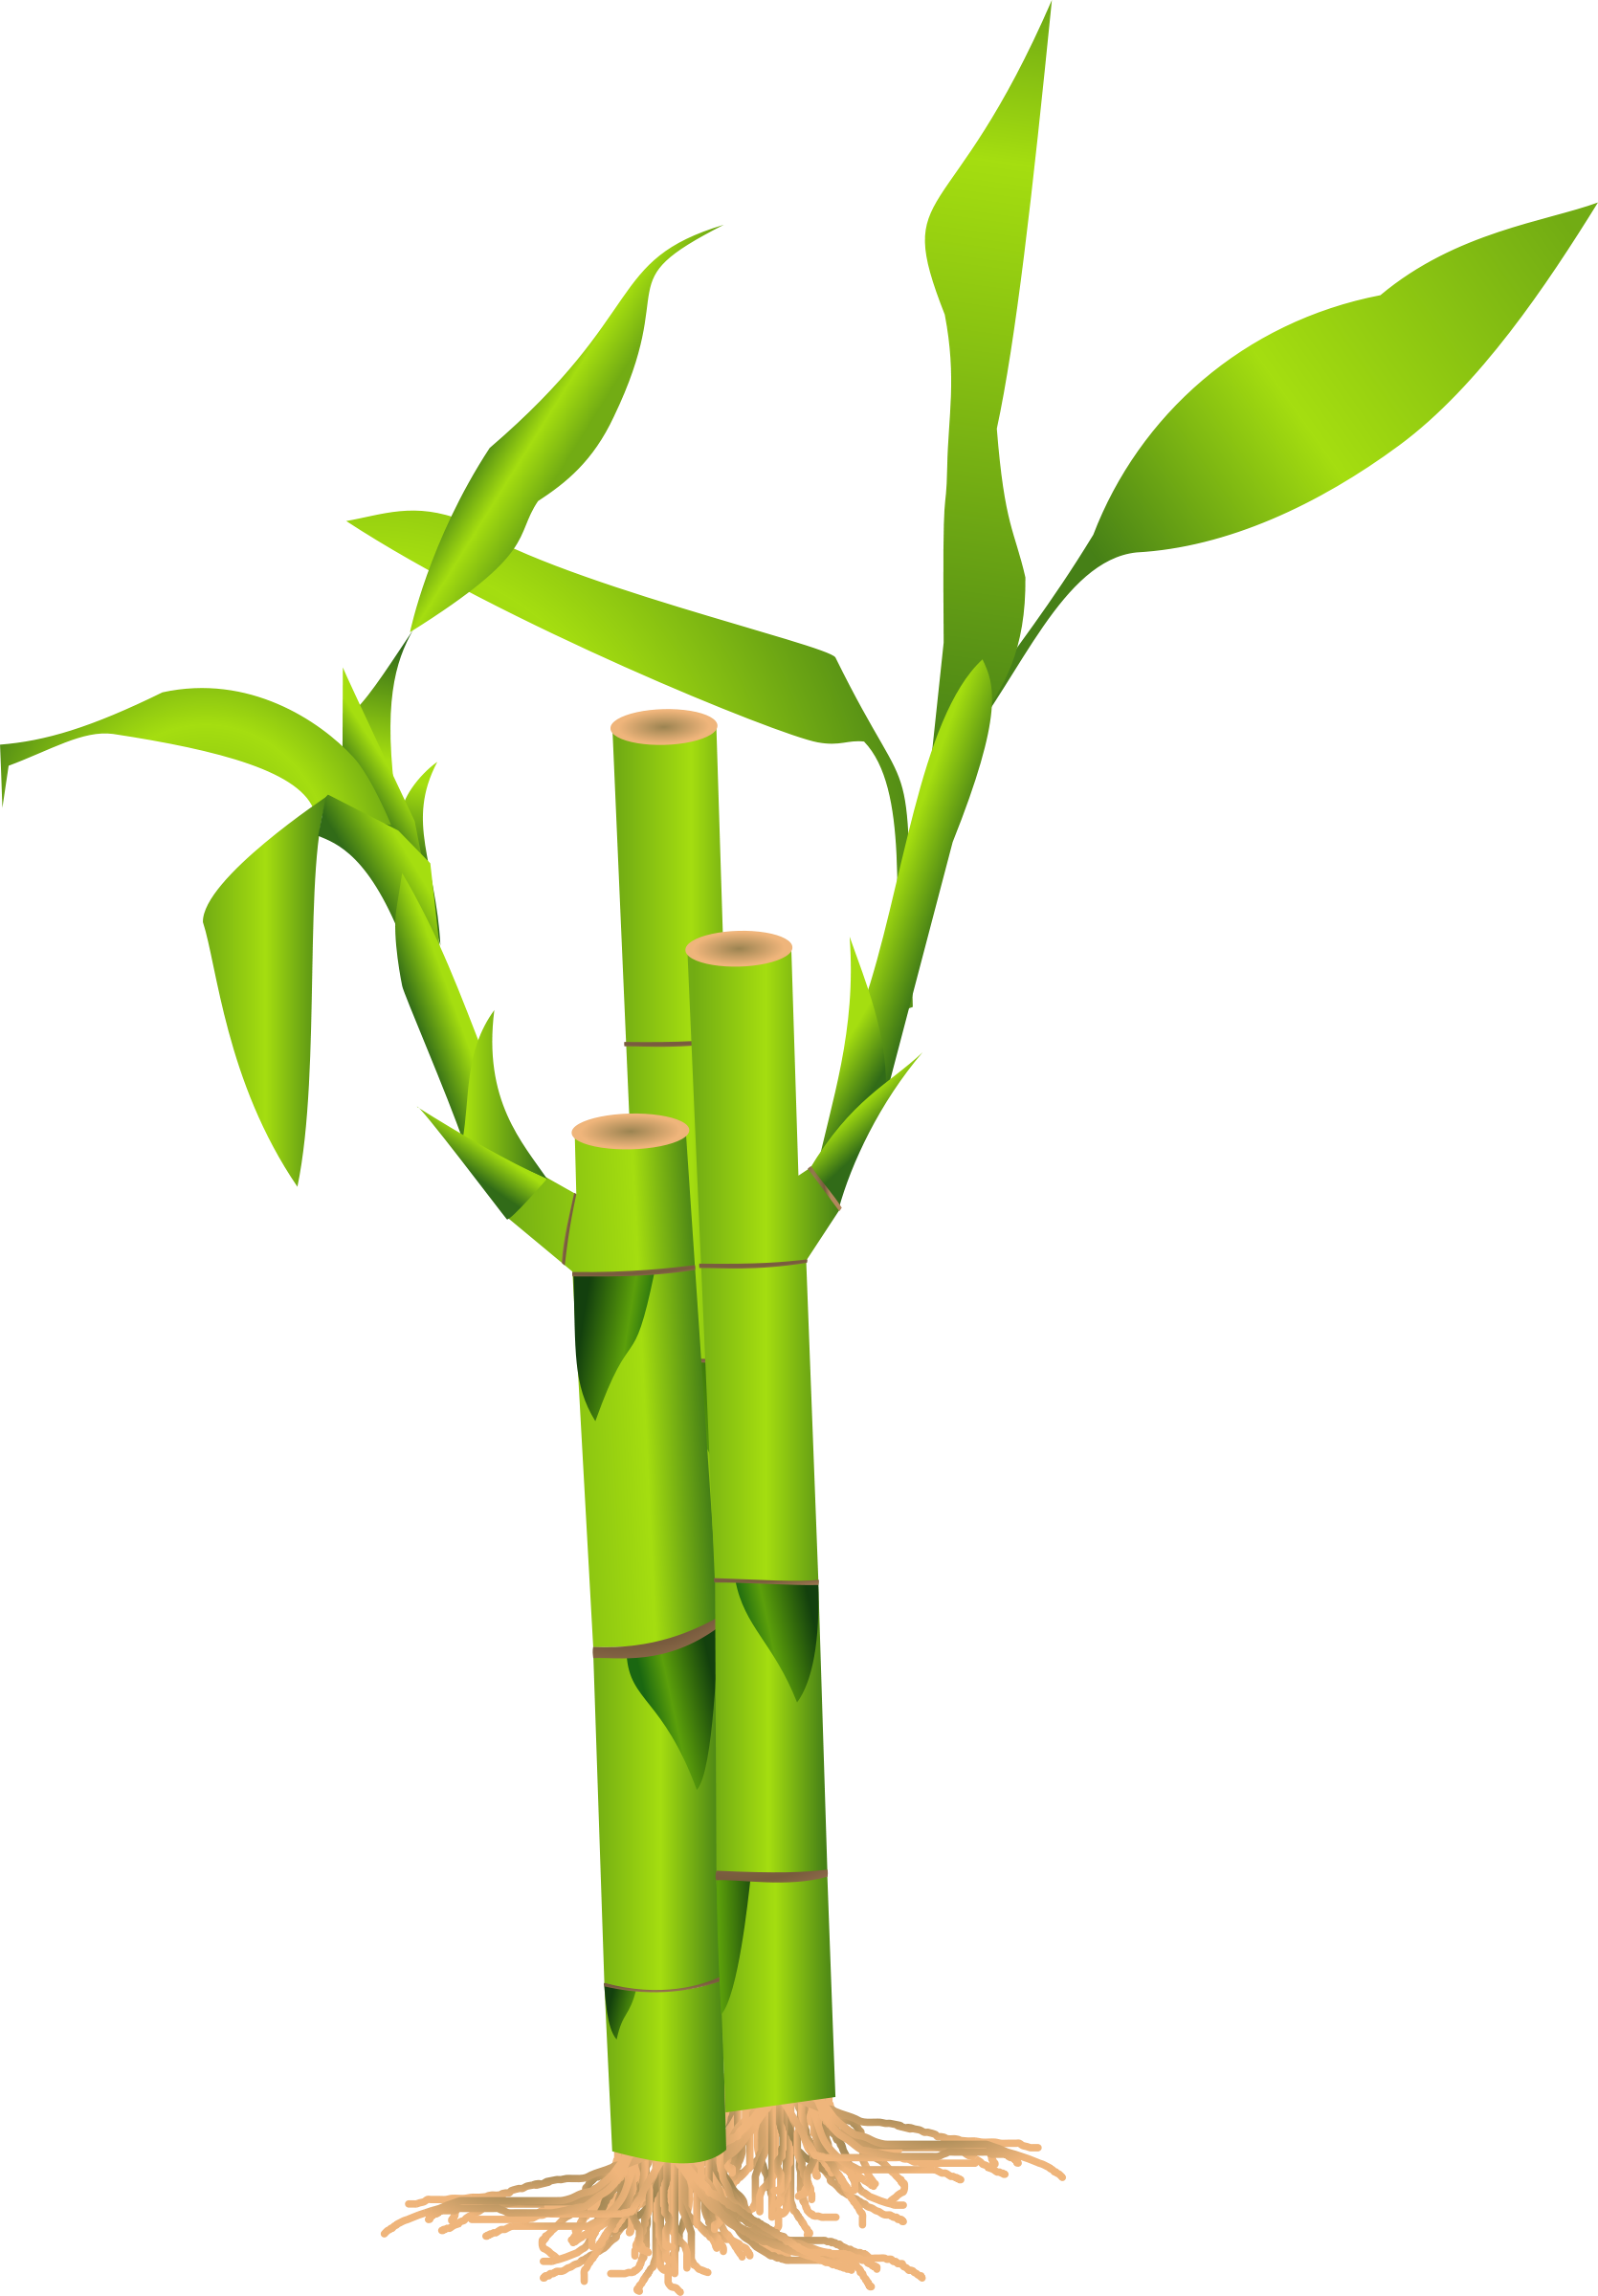 Free Bamboo Cliparts, Download Free Clip Art, Free Clip Art.